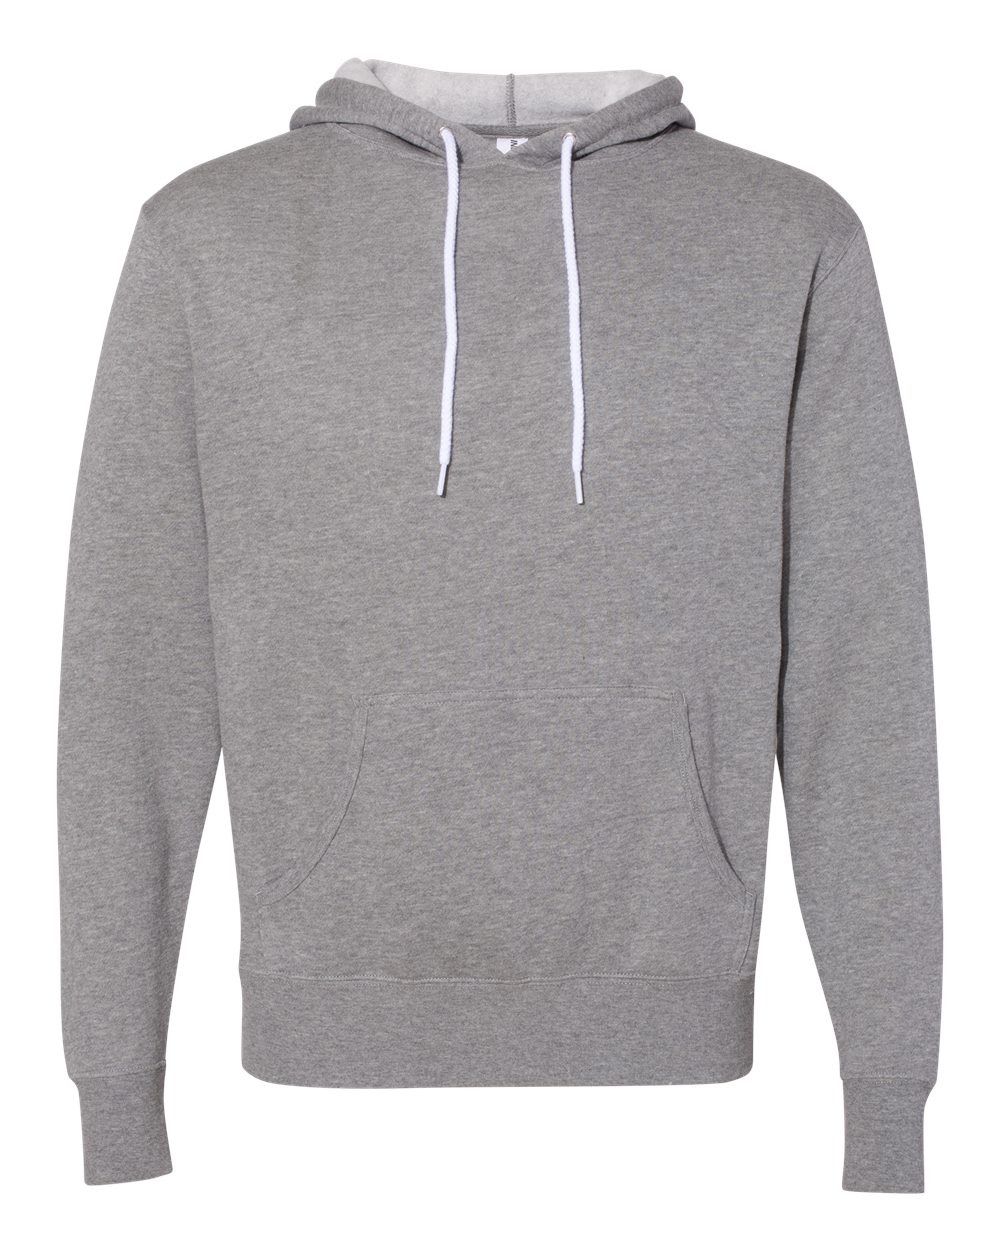 Independent-Trading-Co-Unisex-Hooded-Pullover-Blank-Plain-AFX90UN-up-to-3XL thumbnail 21